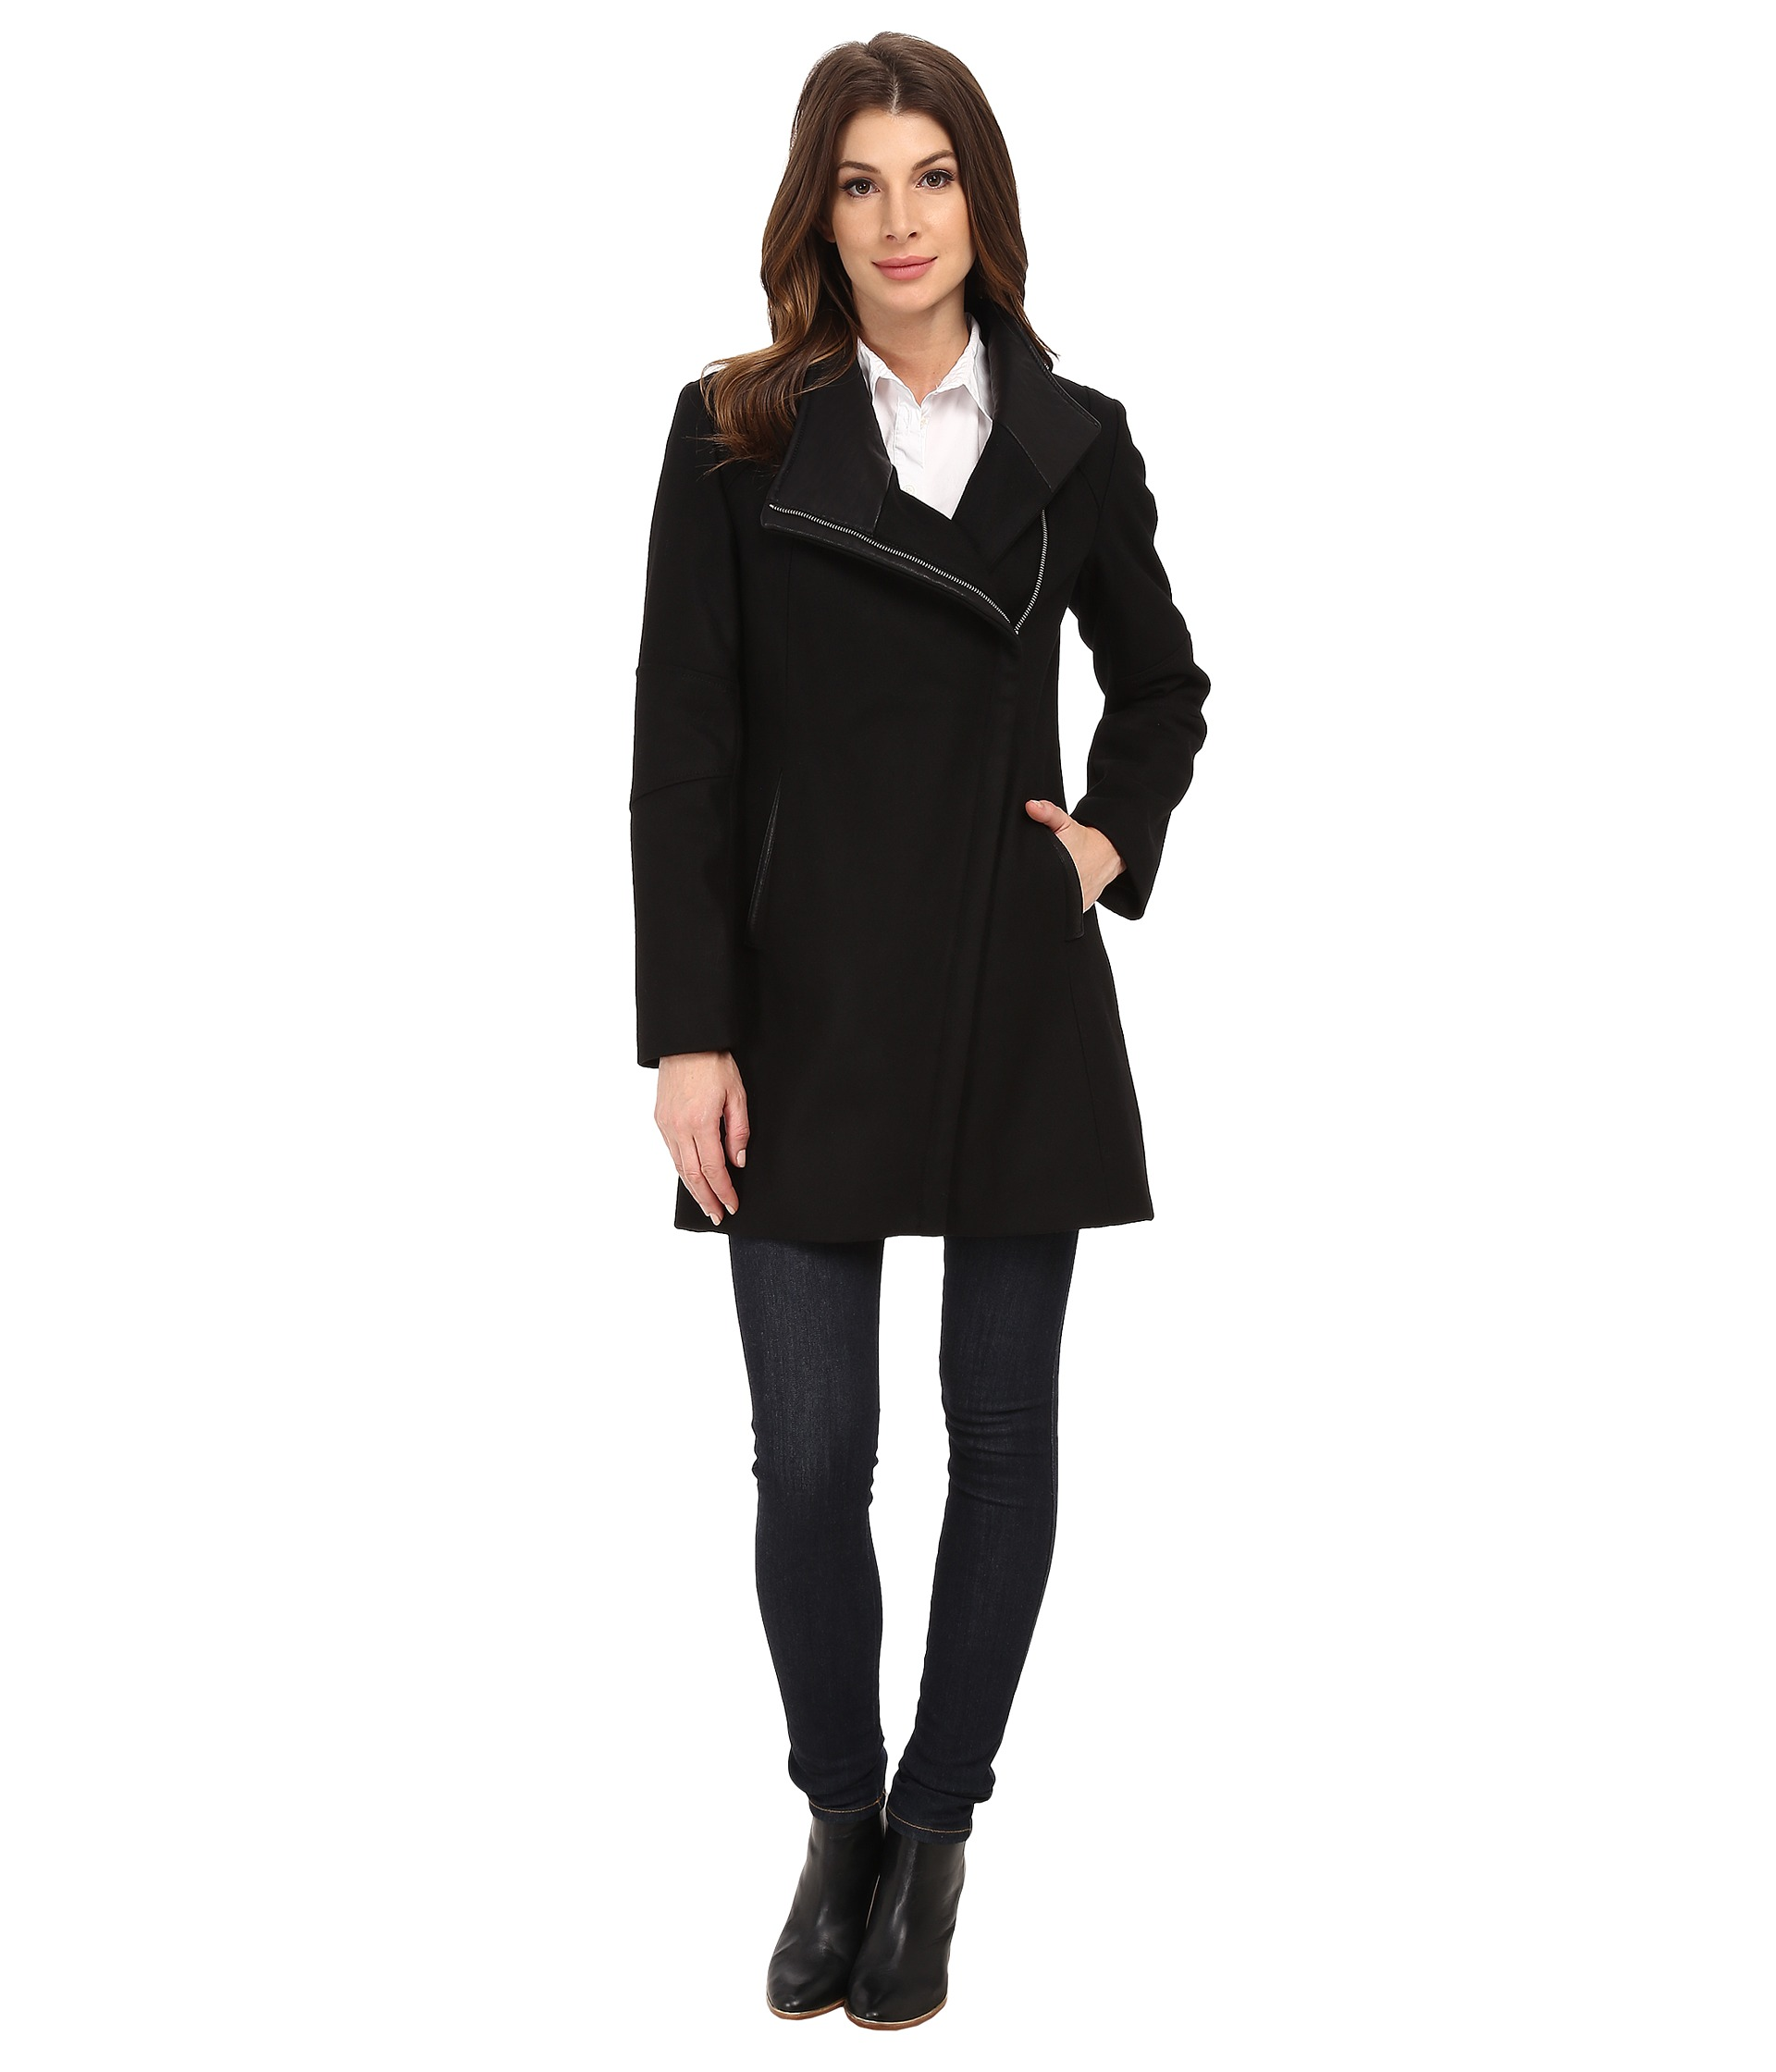 Calvin Klein, Coats & Outerwear, Women at 6pm.com